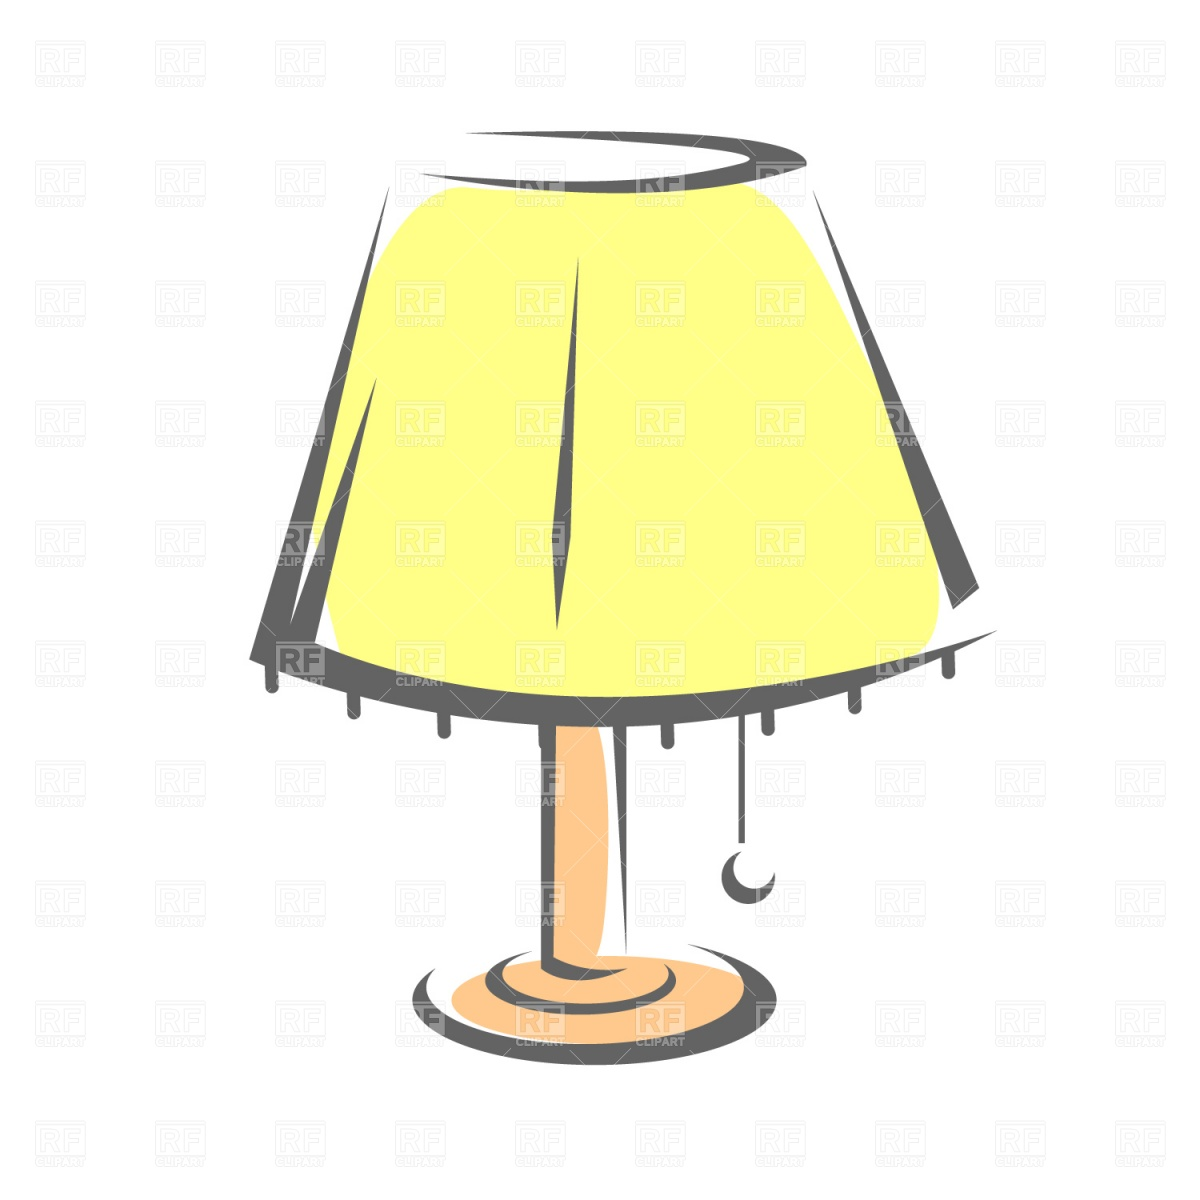 Clip Art Lamp Clip Art clip art lamp shade clipart kid with 1124 objects download royalty free vector clipart